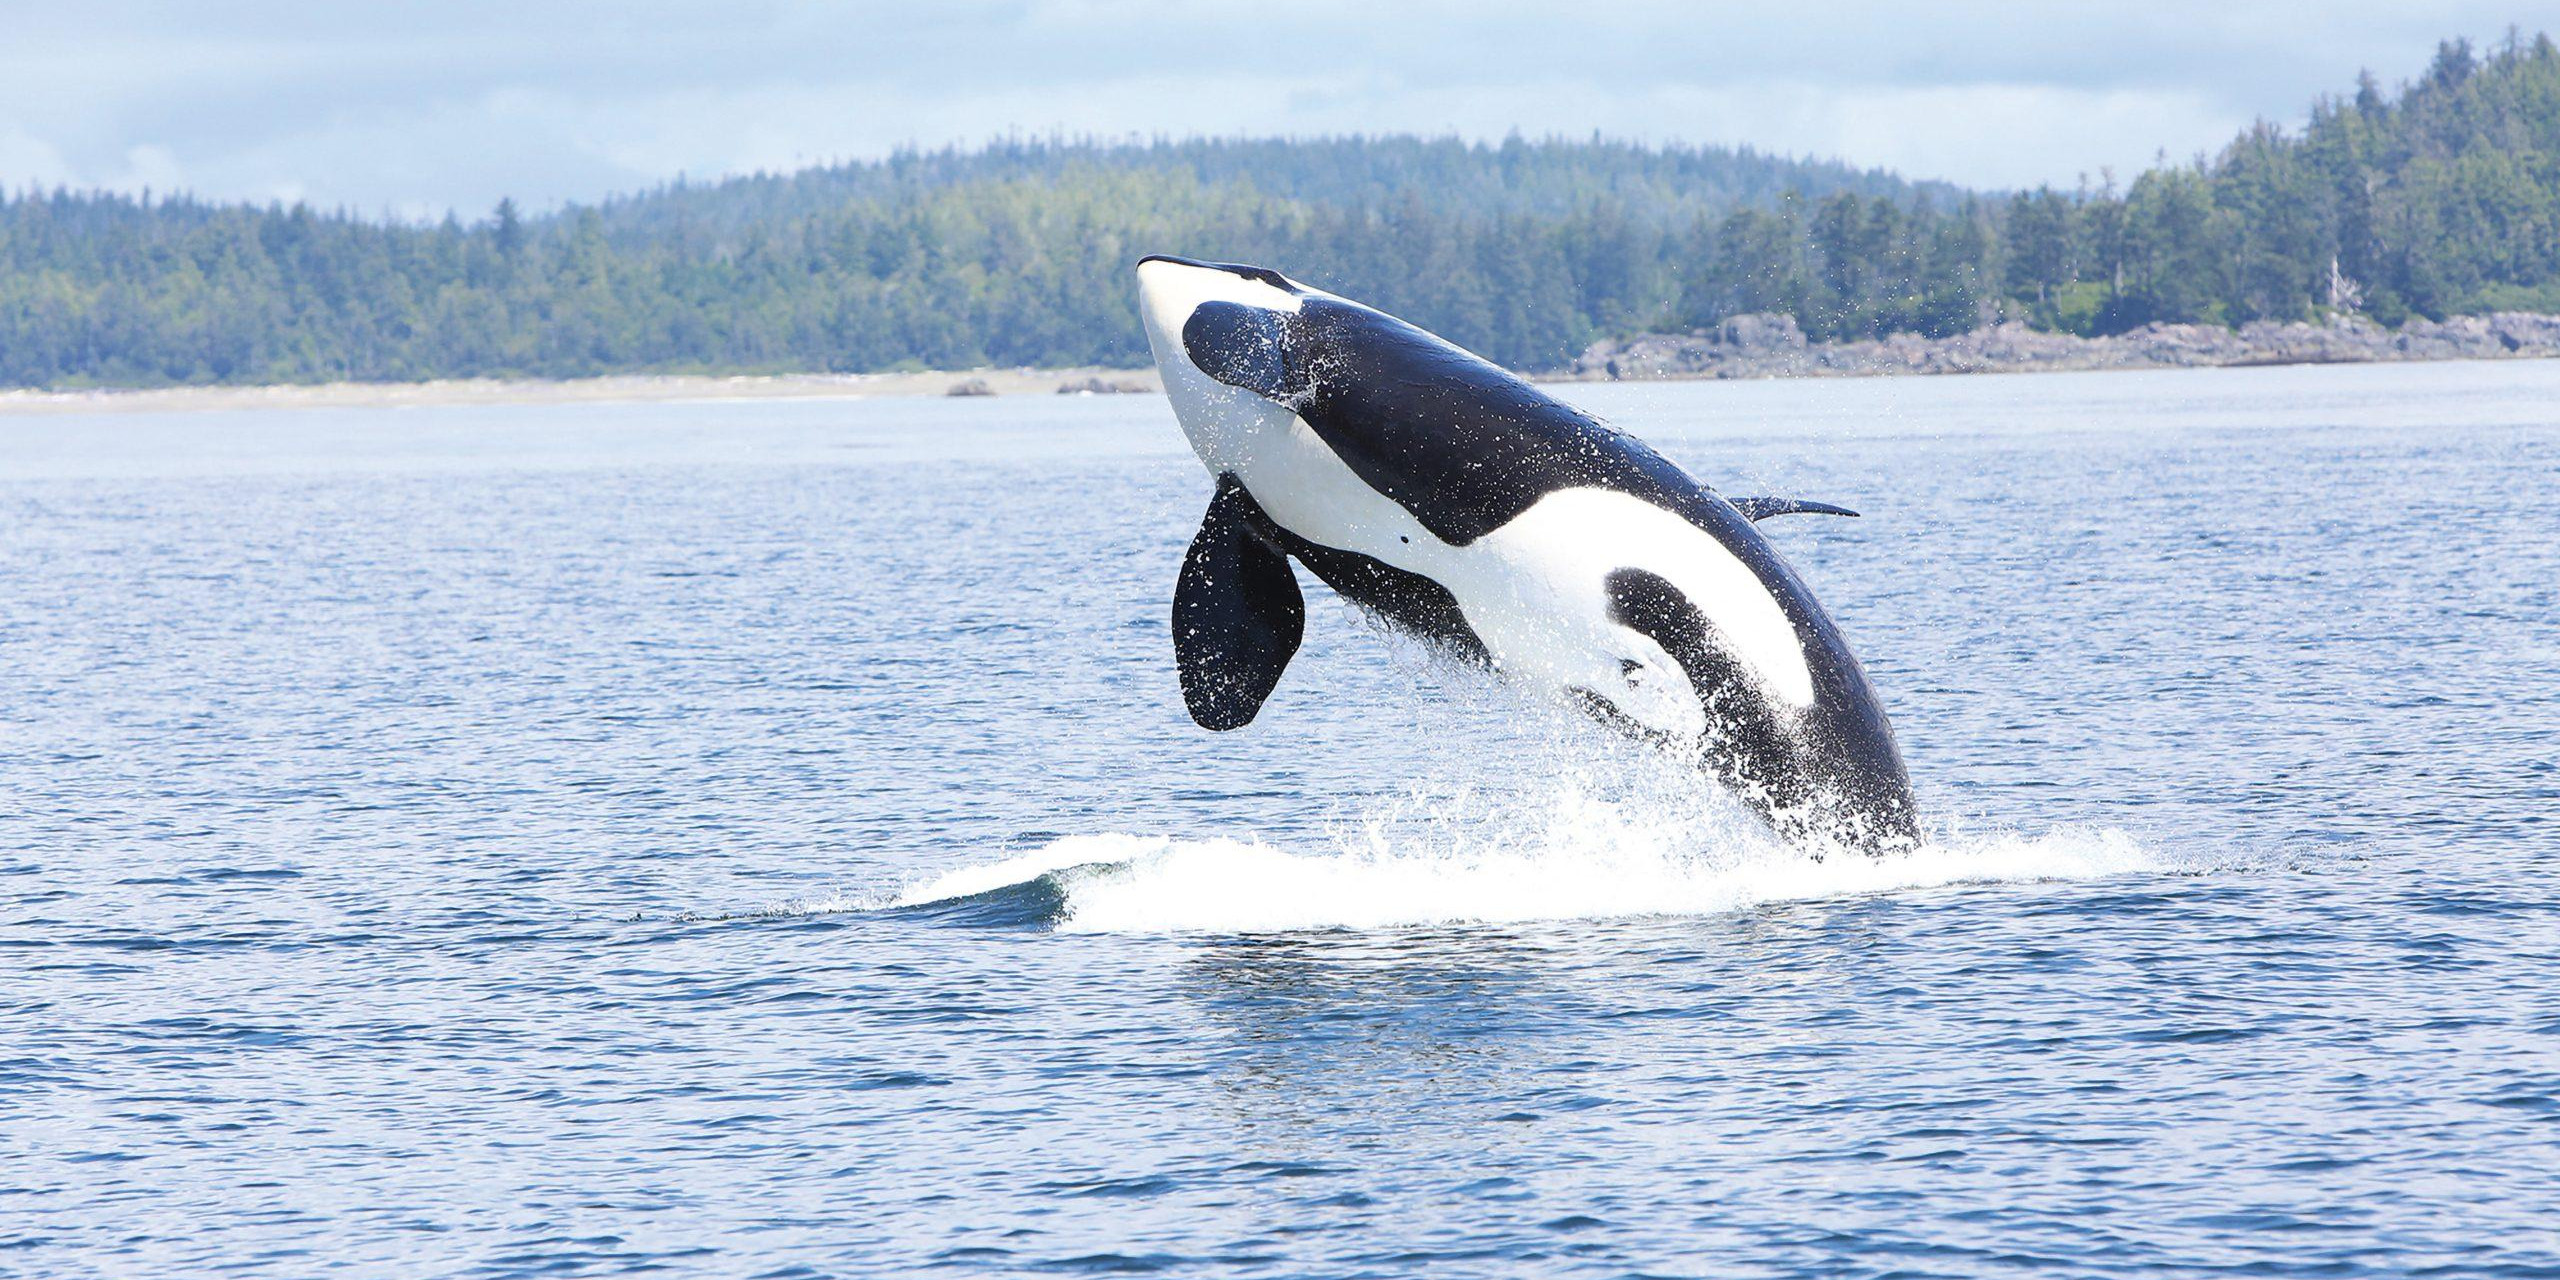 marine life conservation and protection, whale